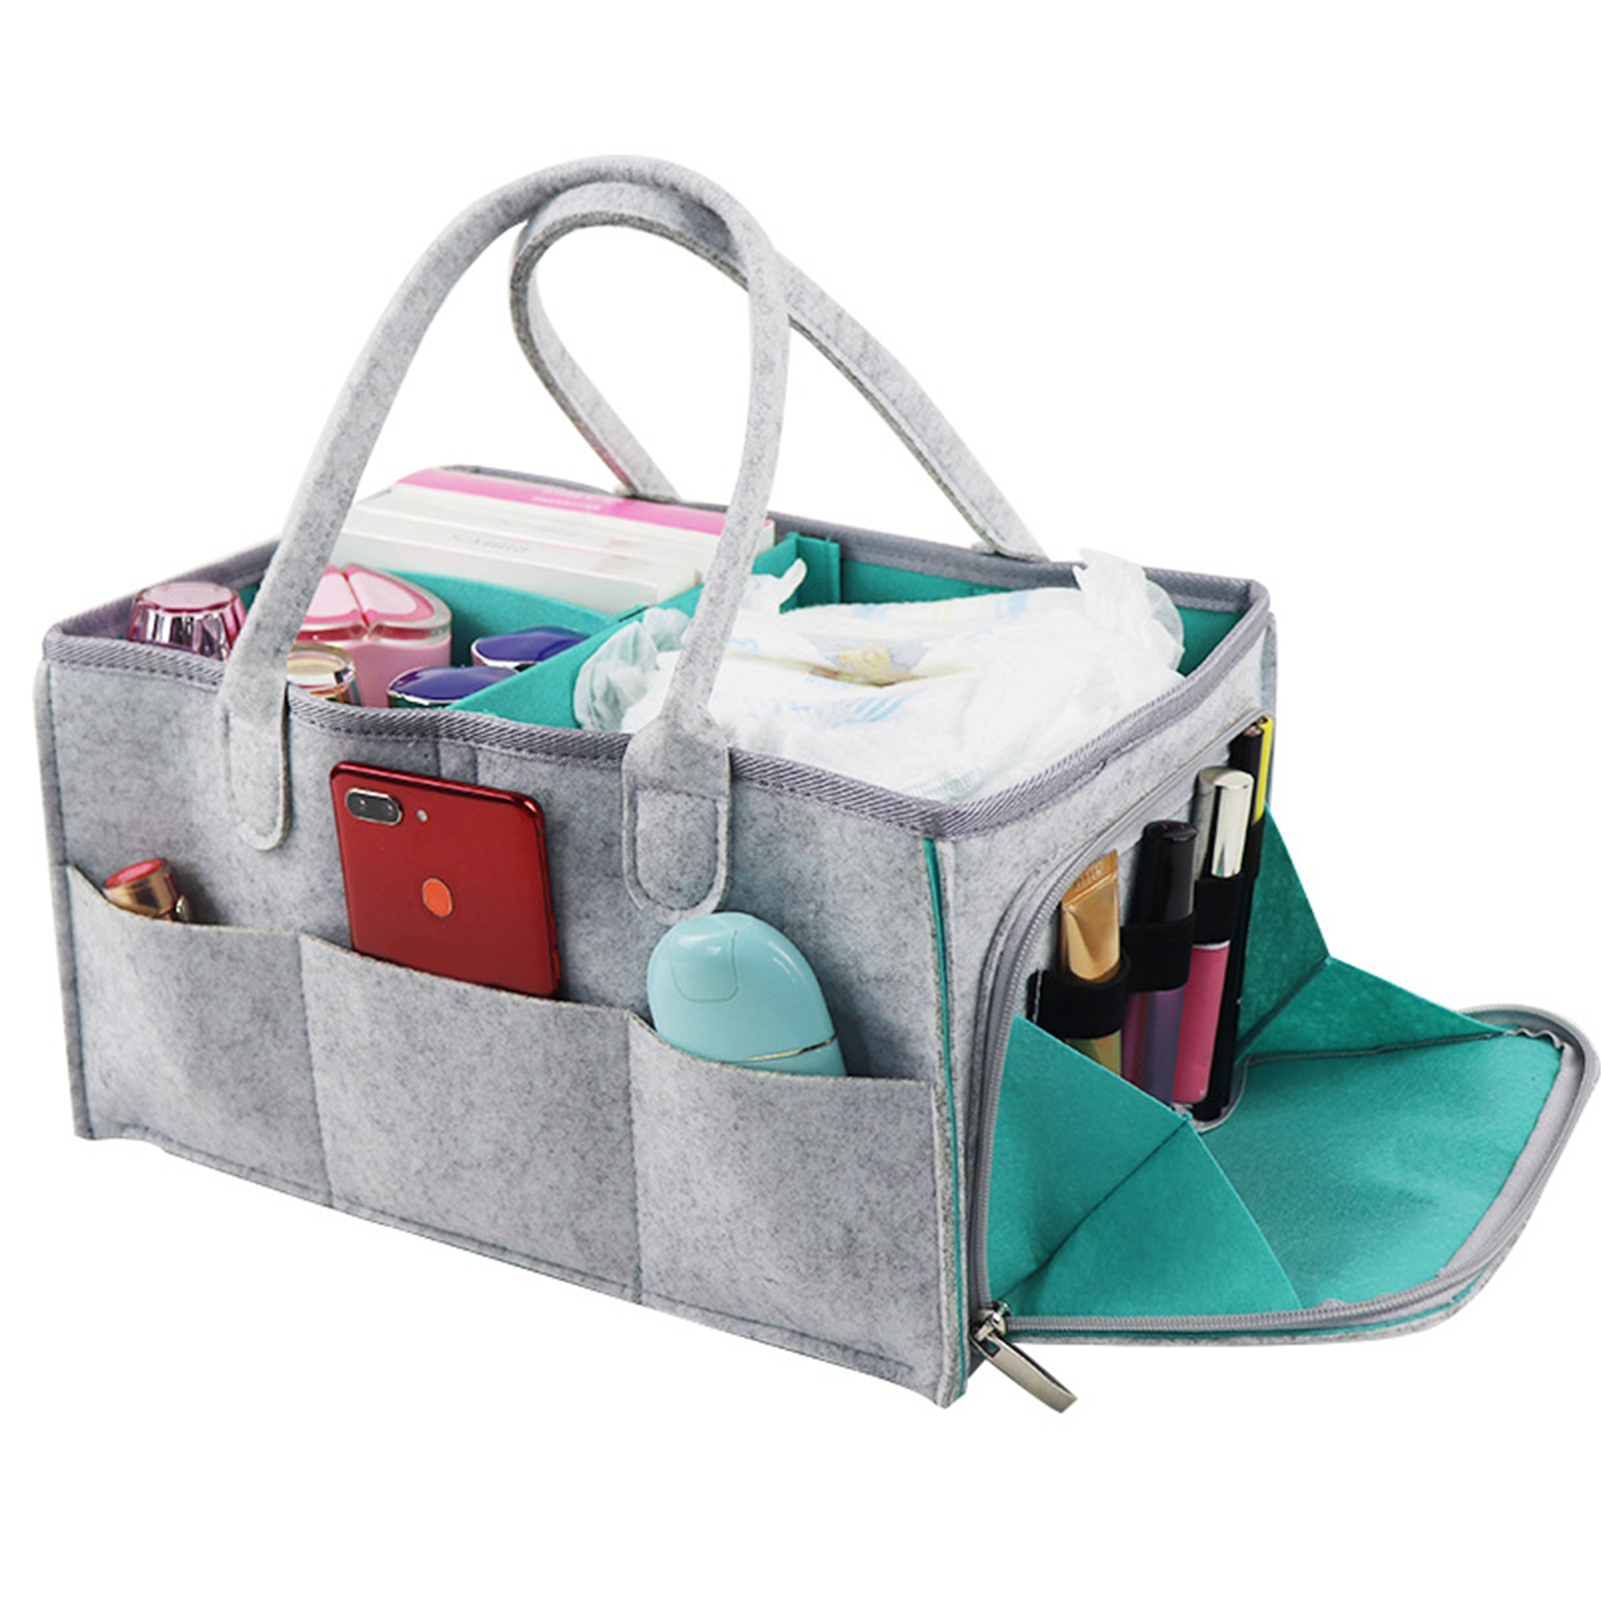 Storage Organizer Nappy Holder With Compartments Felt Portable Bag Changing Table Nursery Baby Diaper Caddy Car Travel Foldable